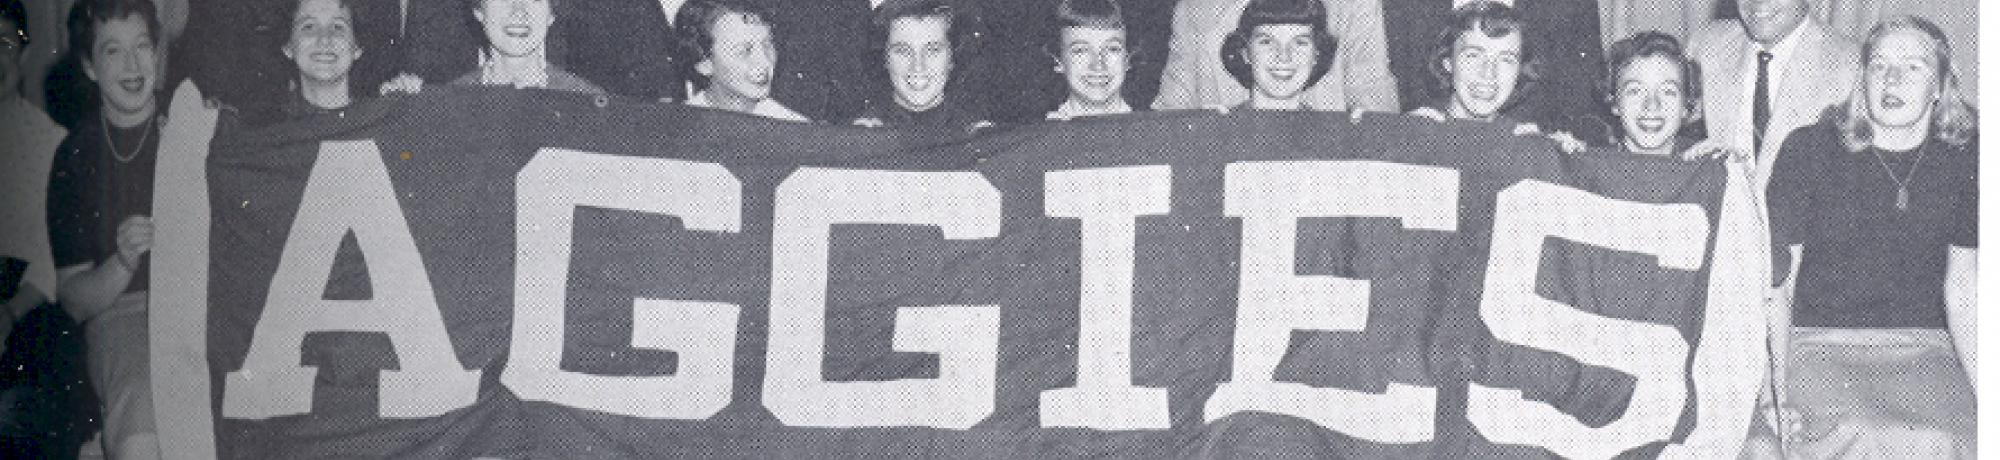 Vintage, historical photo of UC Davis Aggies Banner